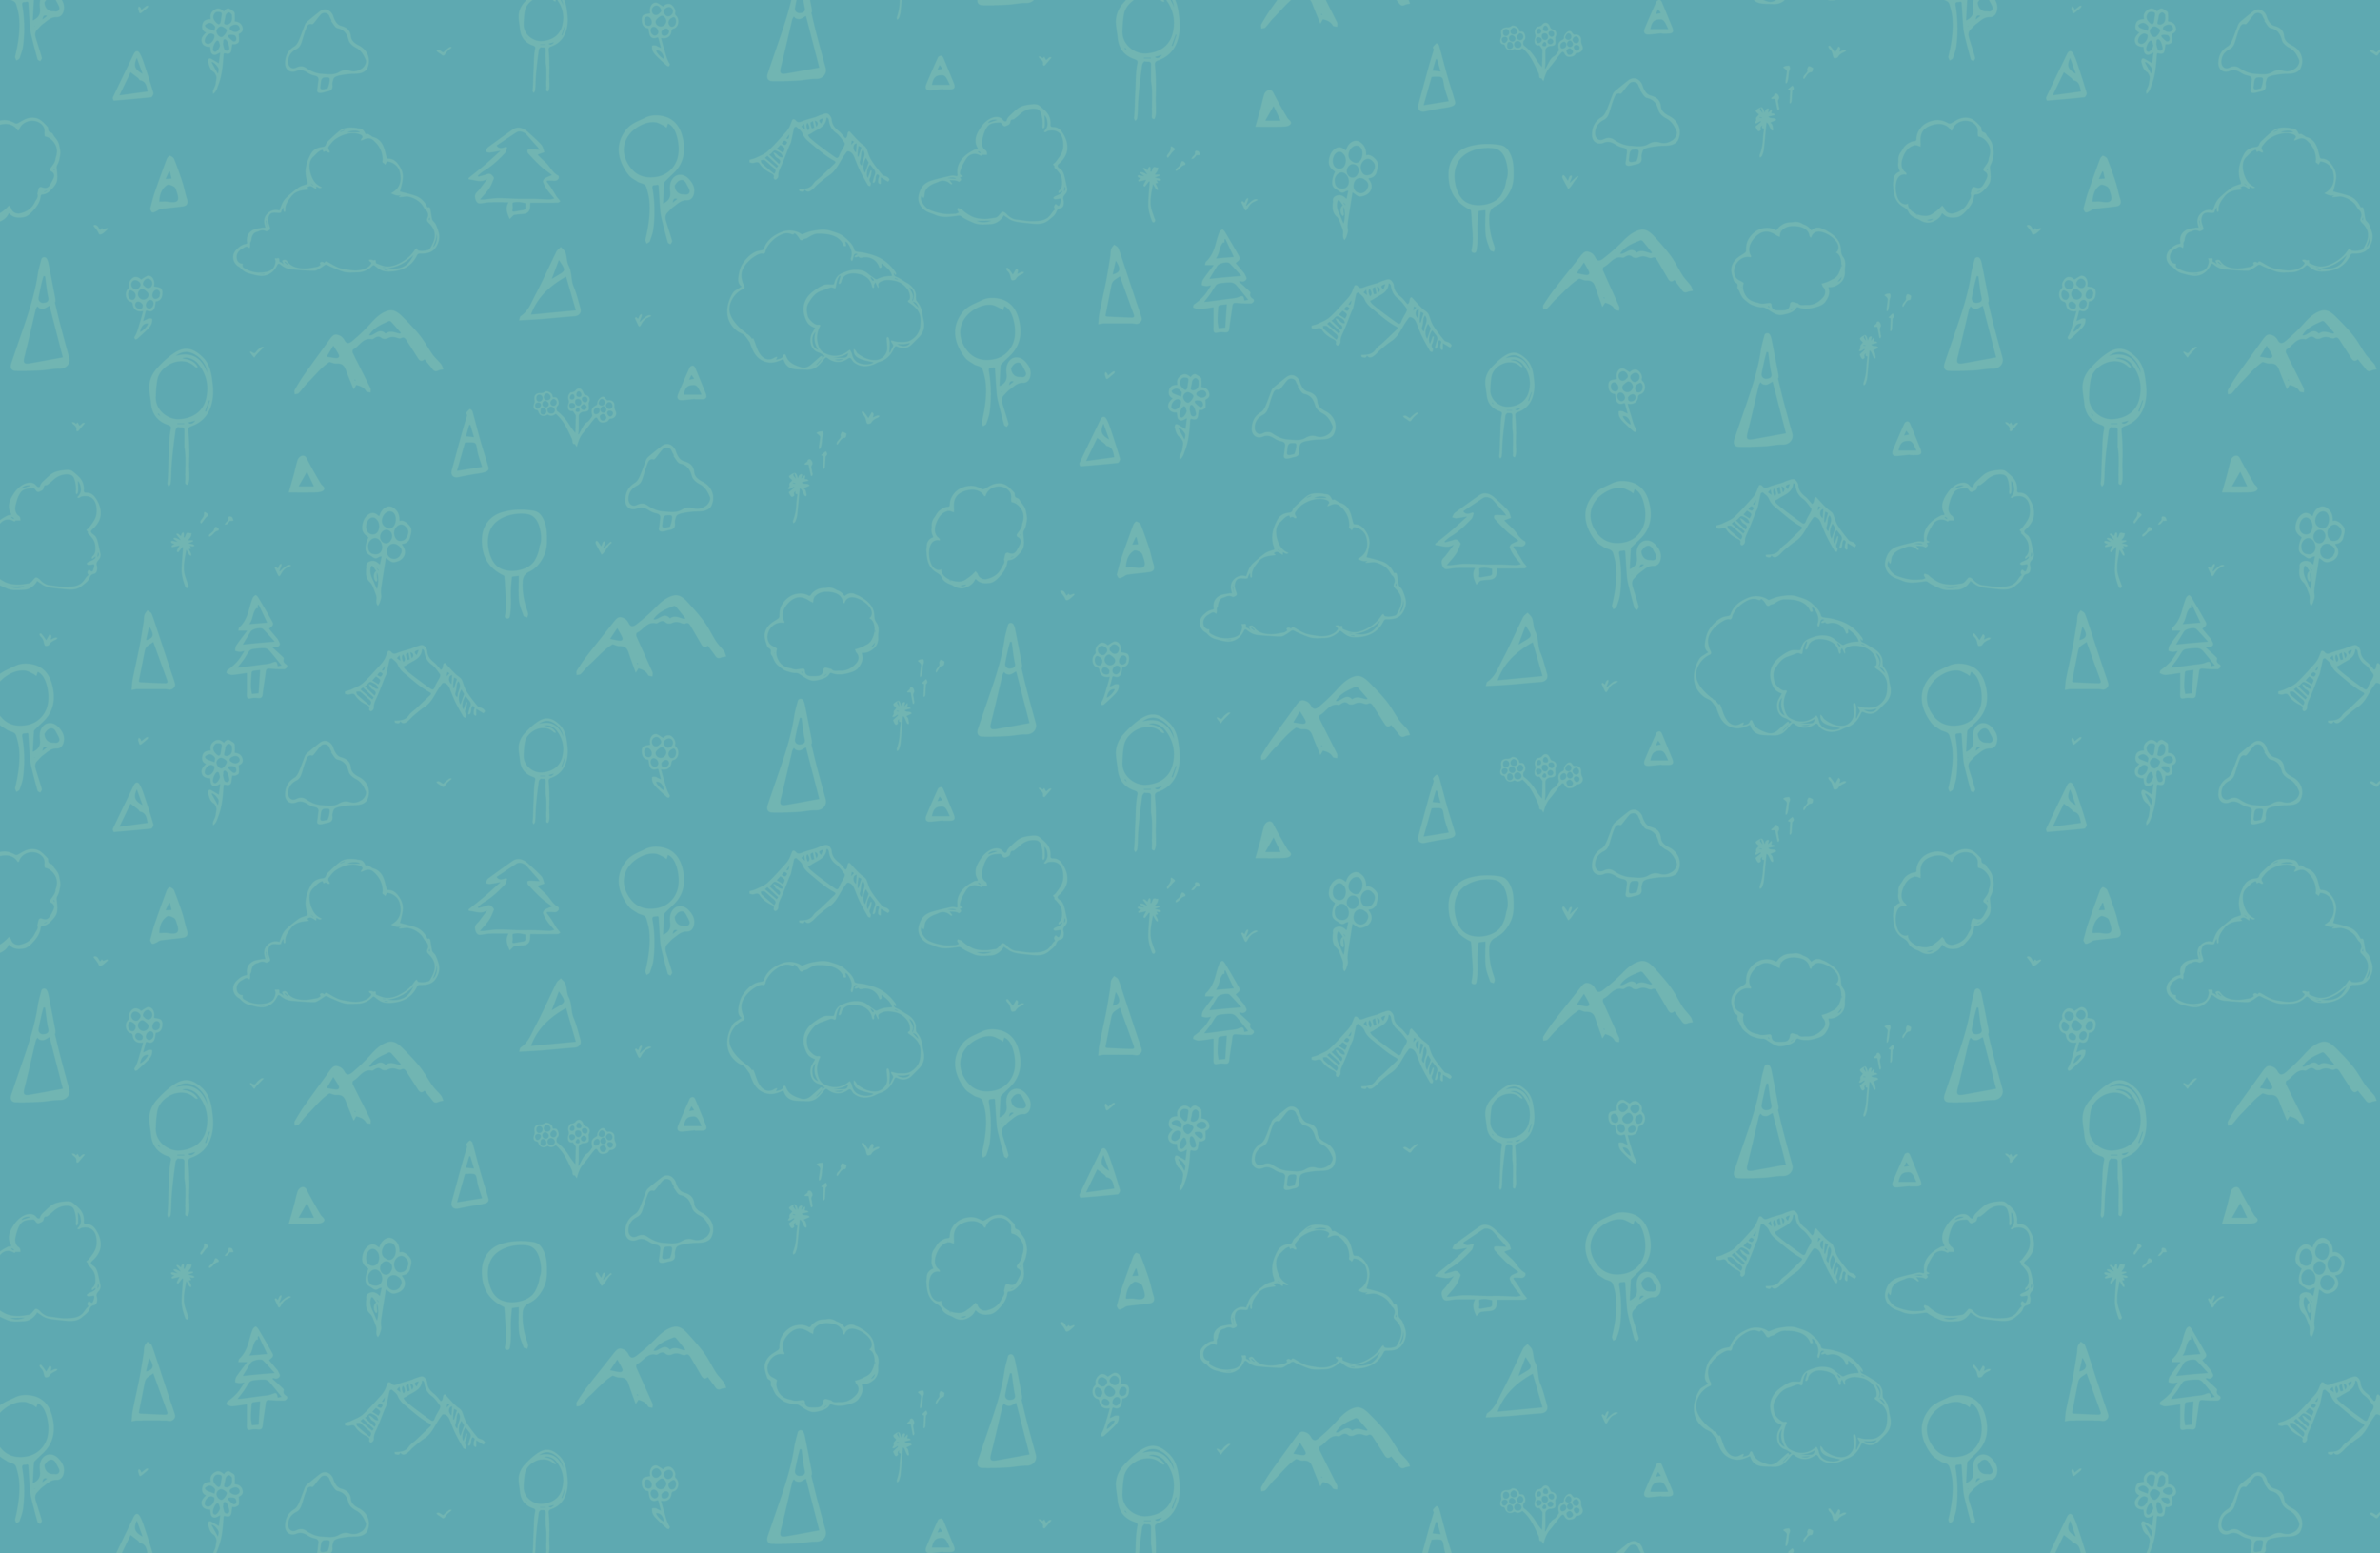 Patterns-07.png